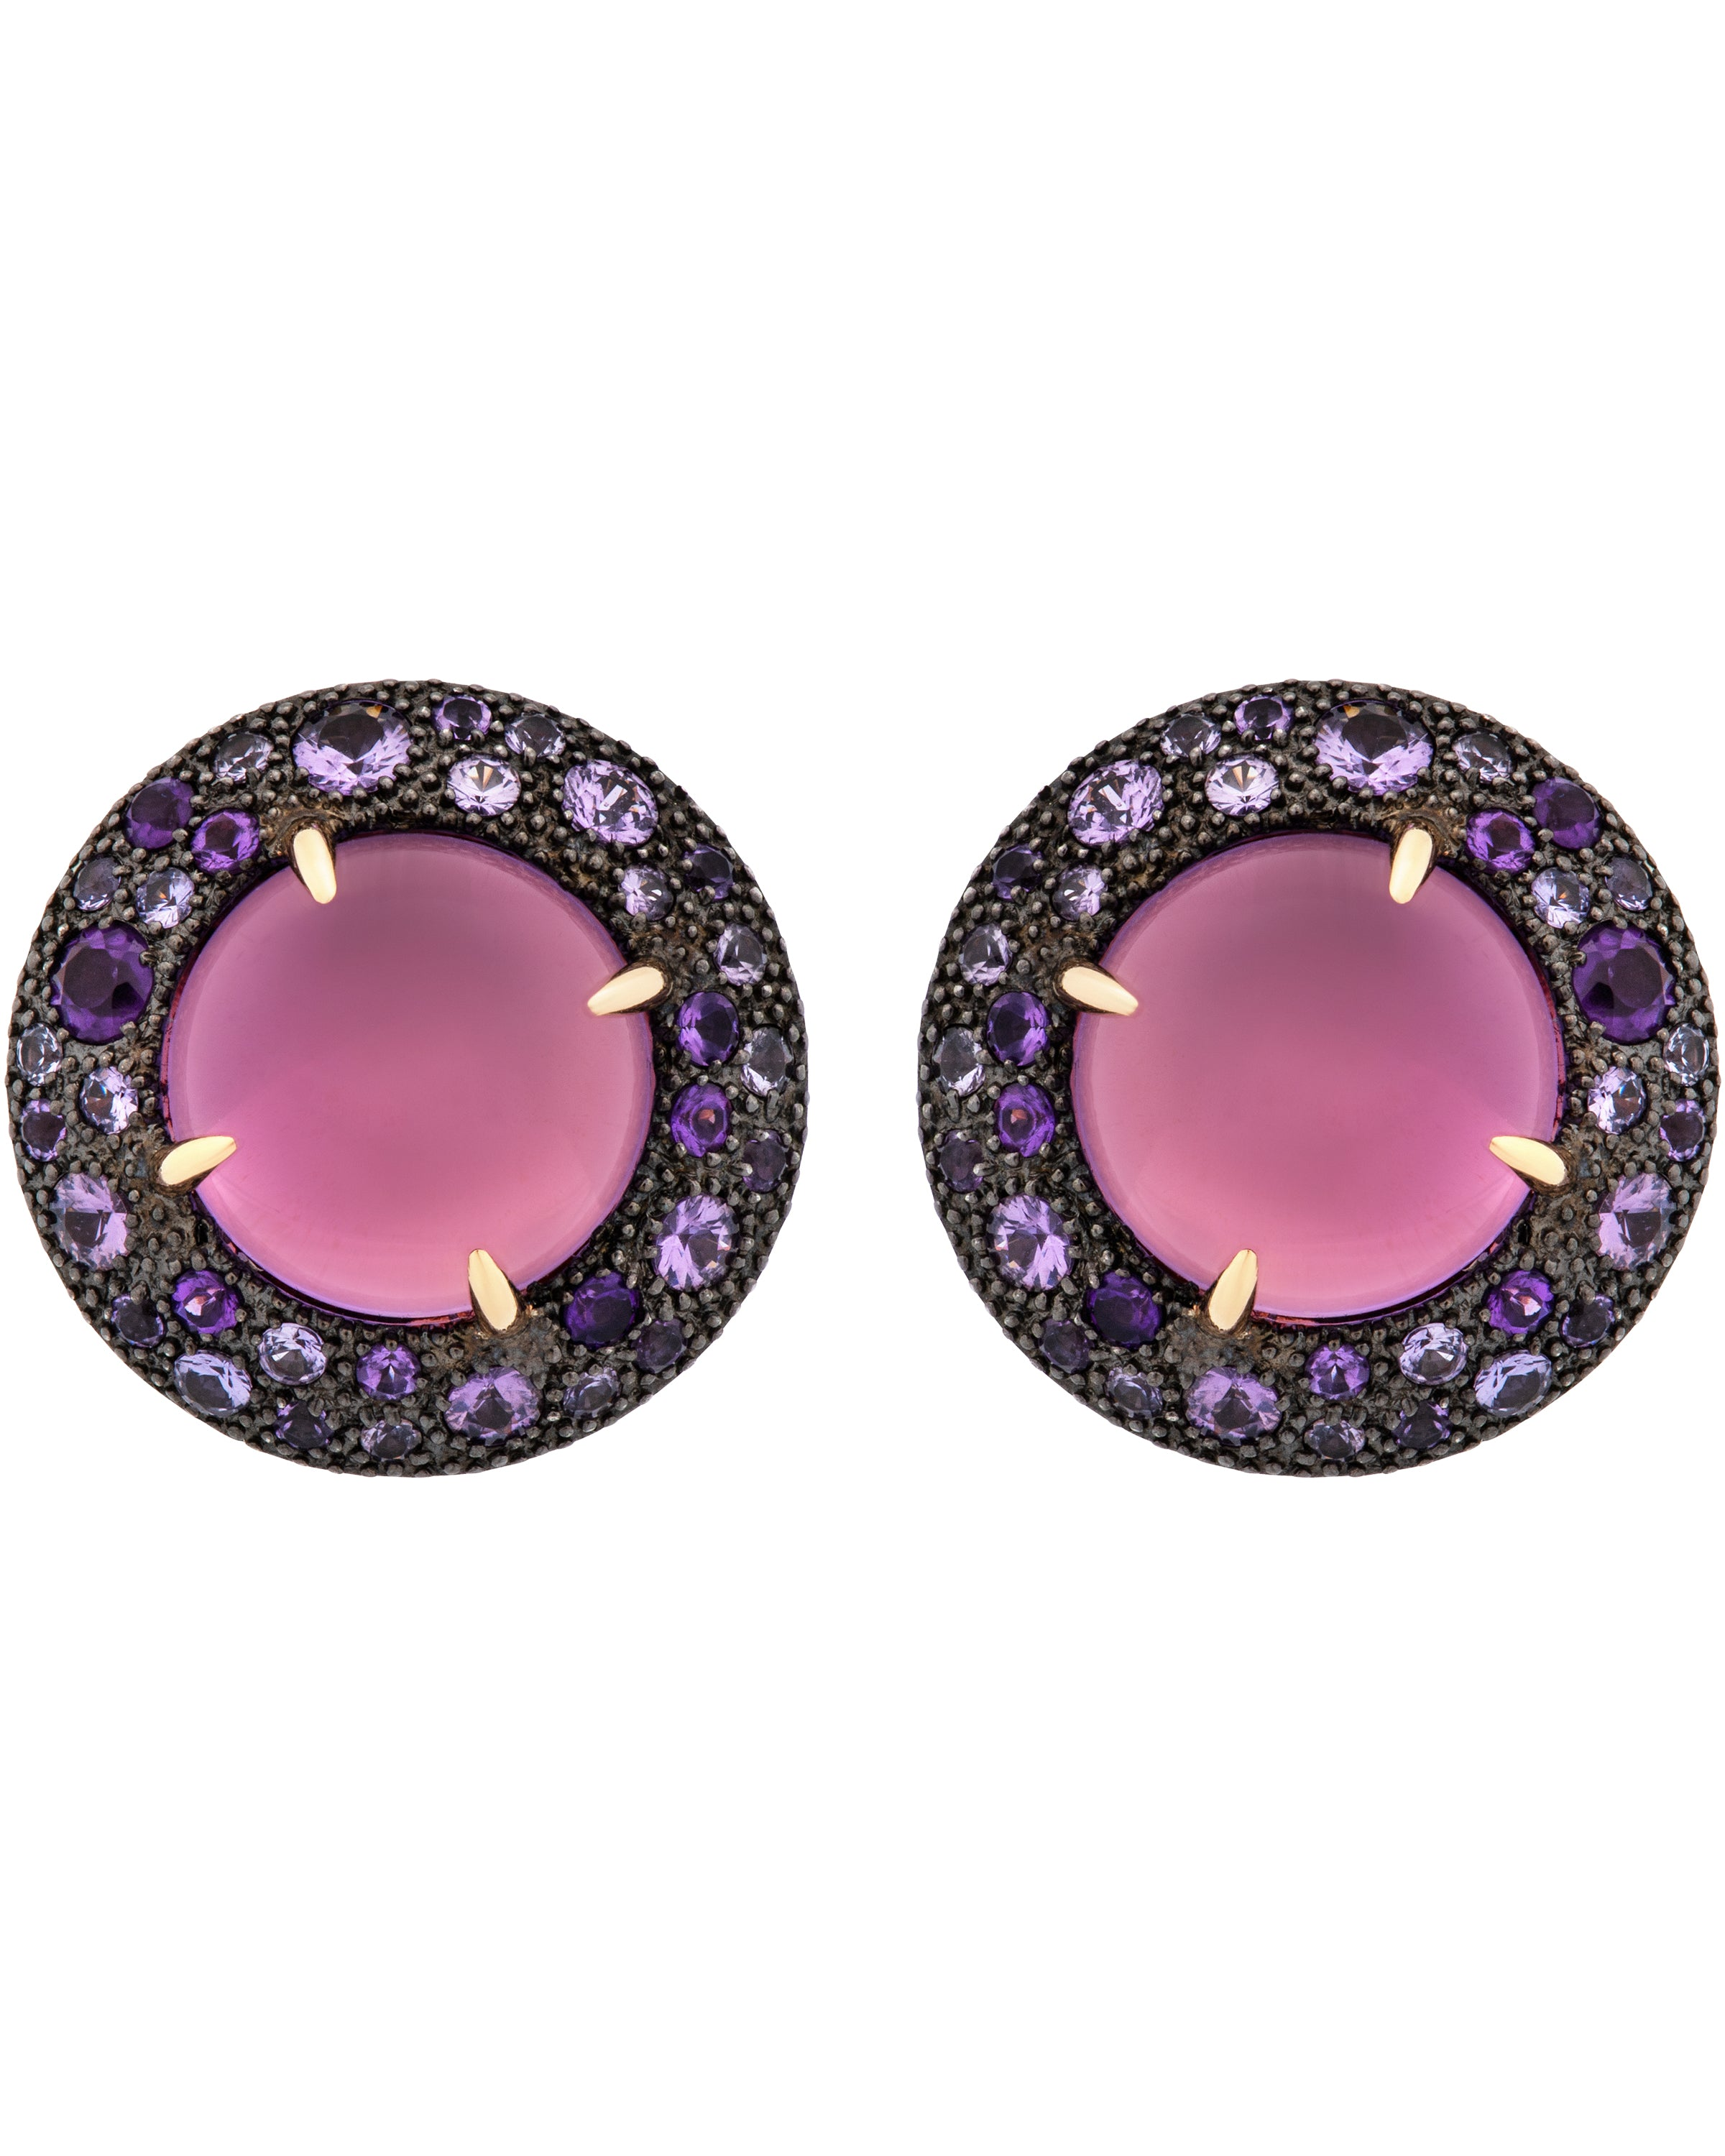 Mimi Milano 18k Gold 925 Silver Violet Sapphires and Amethyst Earring O457C8AZ3